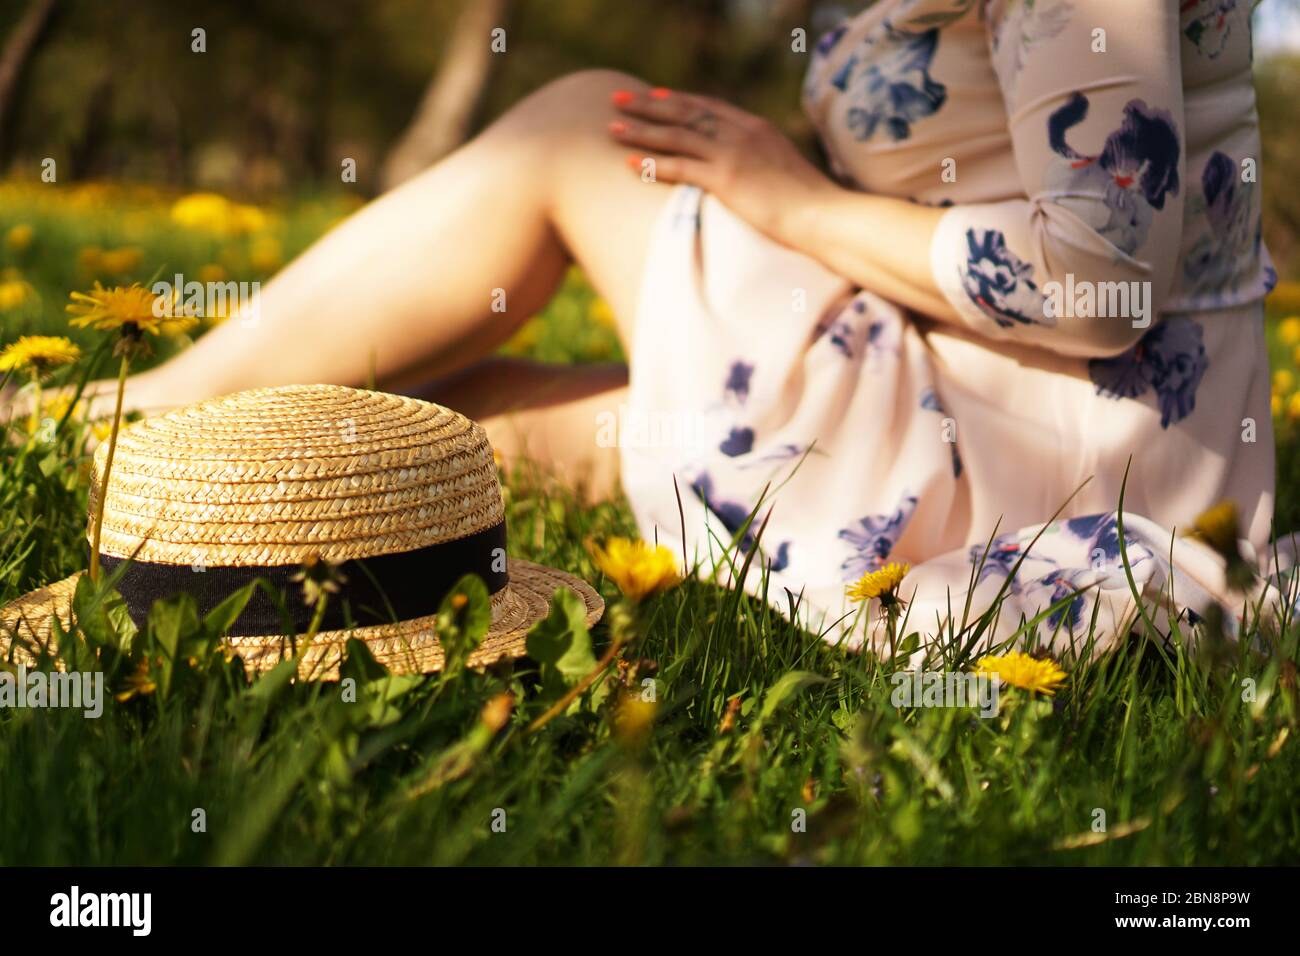 Woman with a straw hat in a flower field and green grass. Summer in the country. Focus on hat Stock Photo